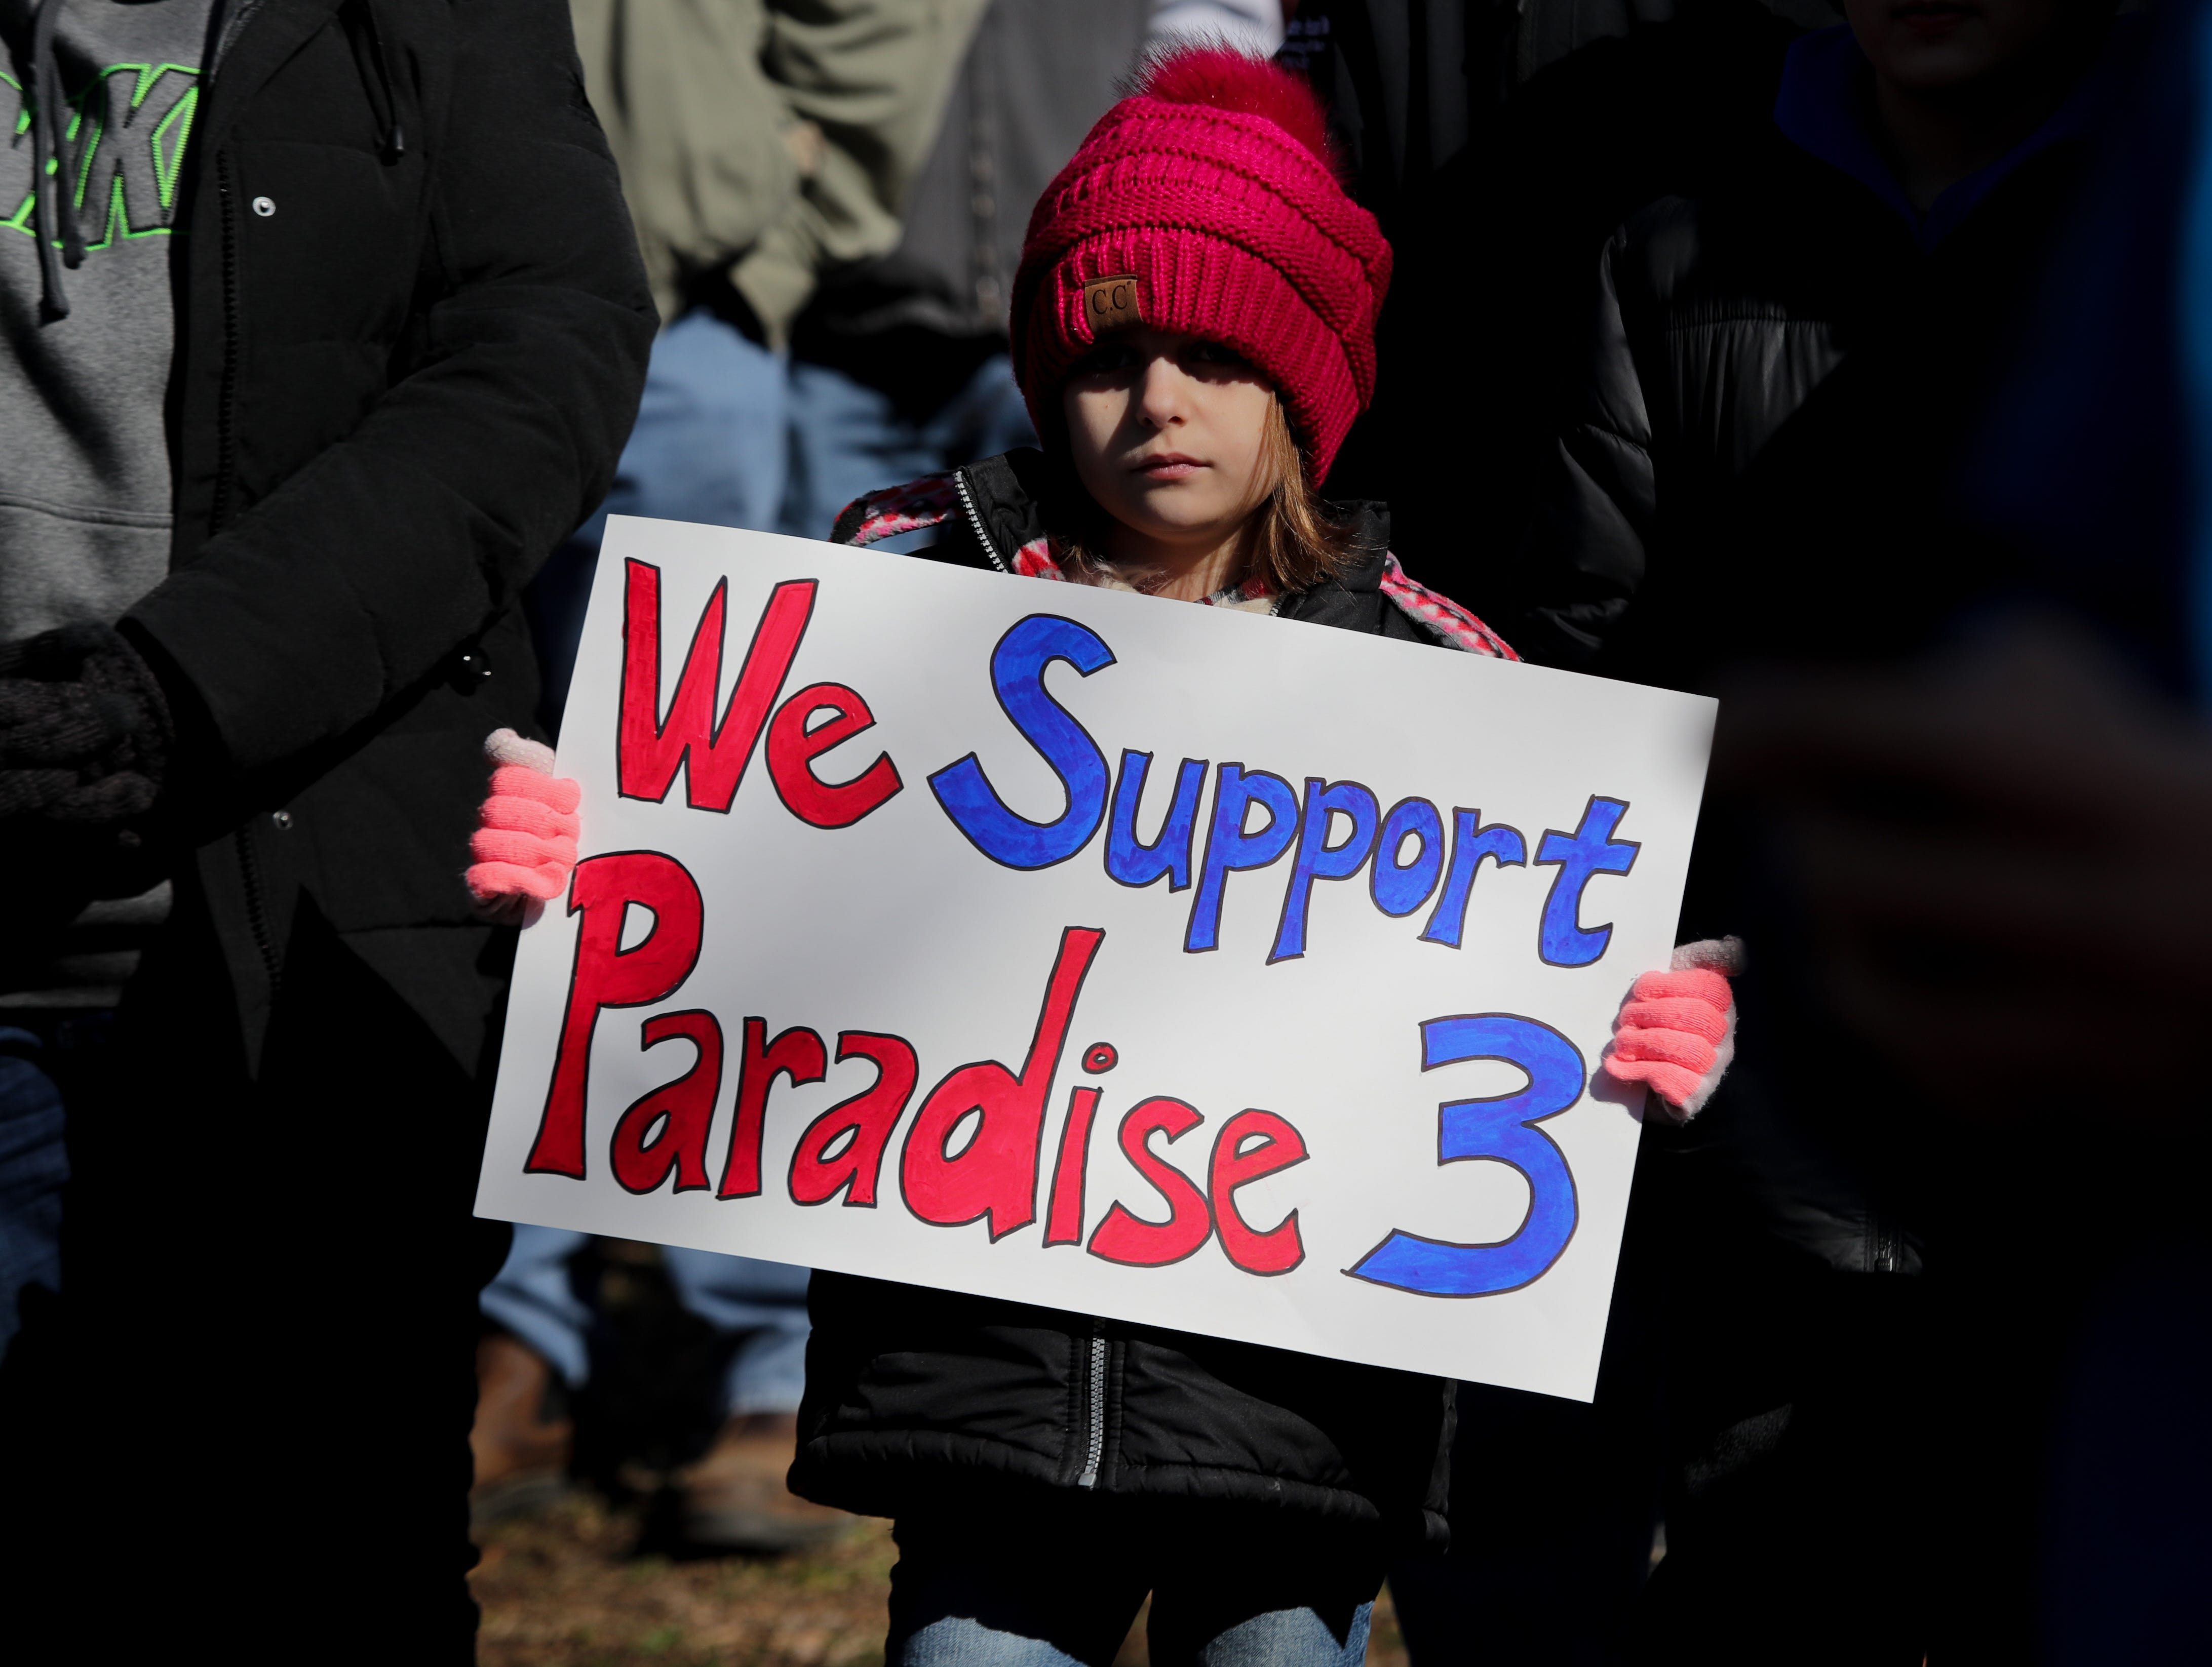 A community rally is held in Powderly to help save the Paradise Fossil Plant in Muhlenberg County. The western Kentucky coal-fired power plant's future is up for vote at the next TVA board meeting on Feb. 14th.Feb. 9, 2019